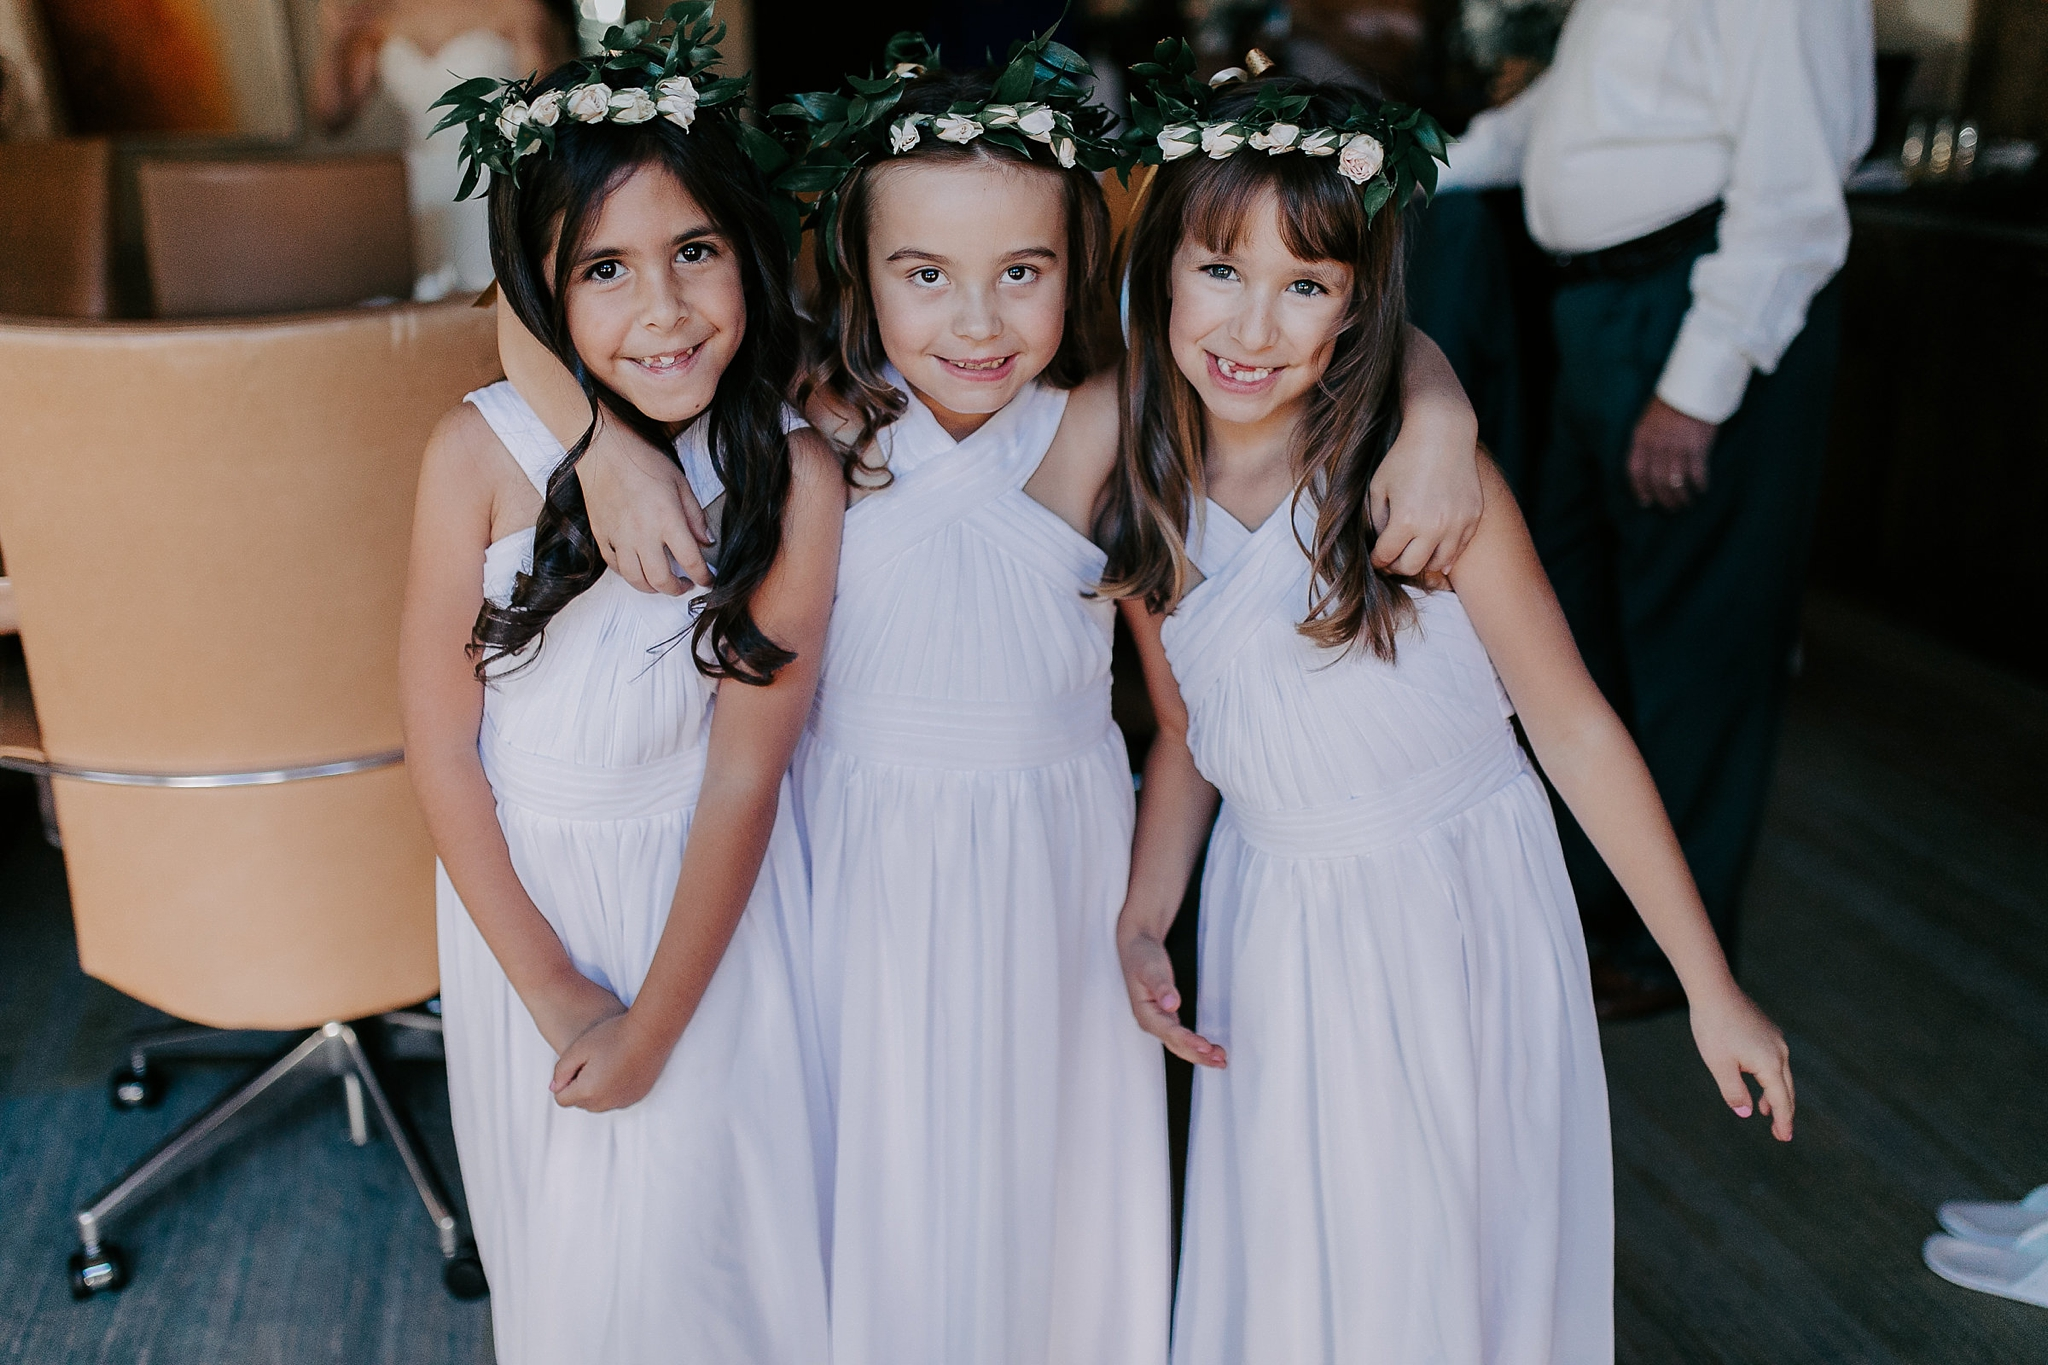 Alicia+lucia+photography+-+albuquerque+wedding+photographer+-+santa+fe+wedding+photography+-+new+mexico+wedding+photographer+-+new+mexico+wedding+-+flower+girl+-+wedding+flower+girl_0066.jpg